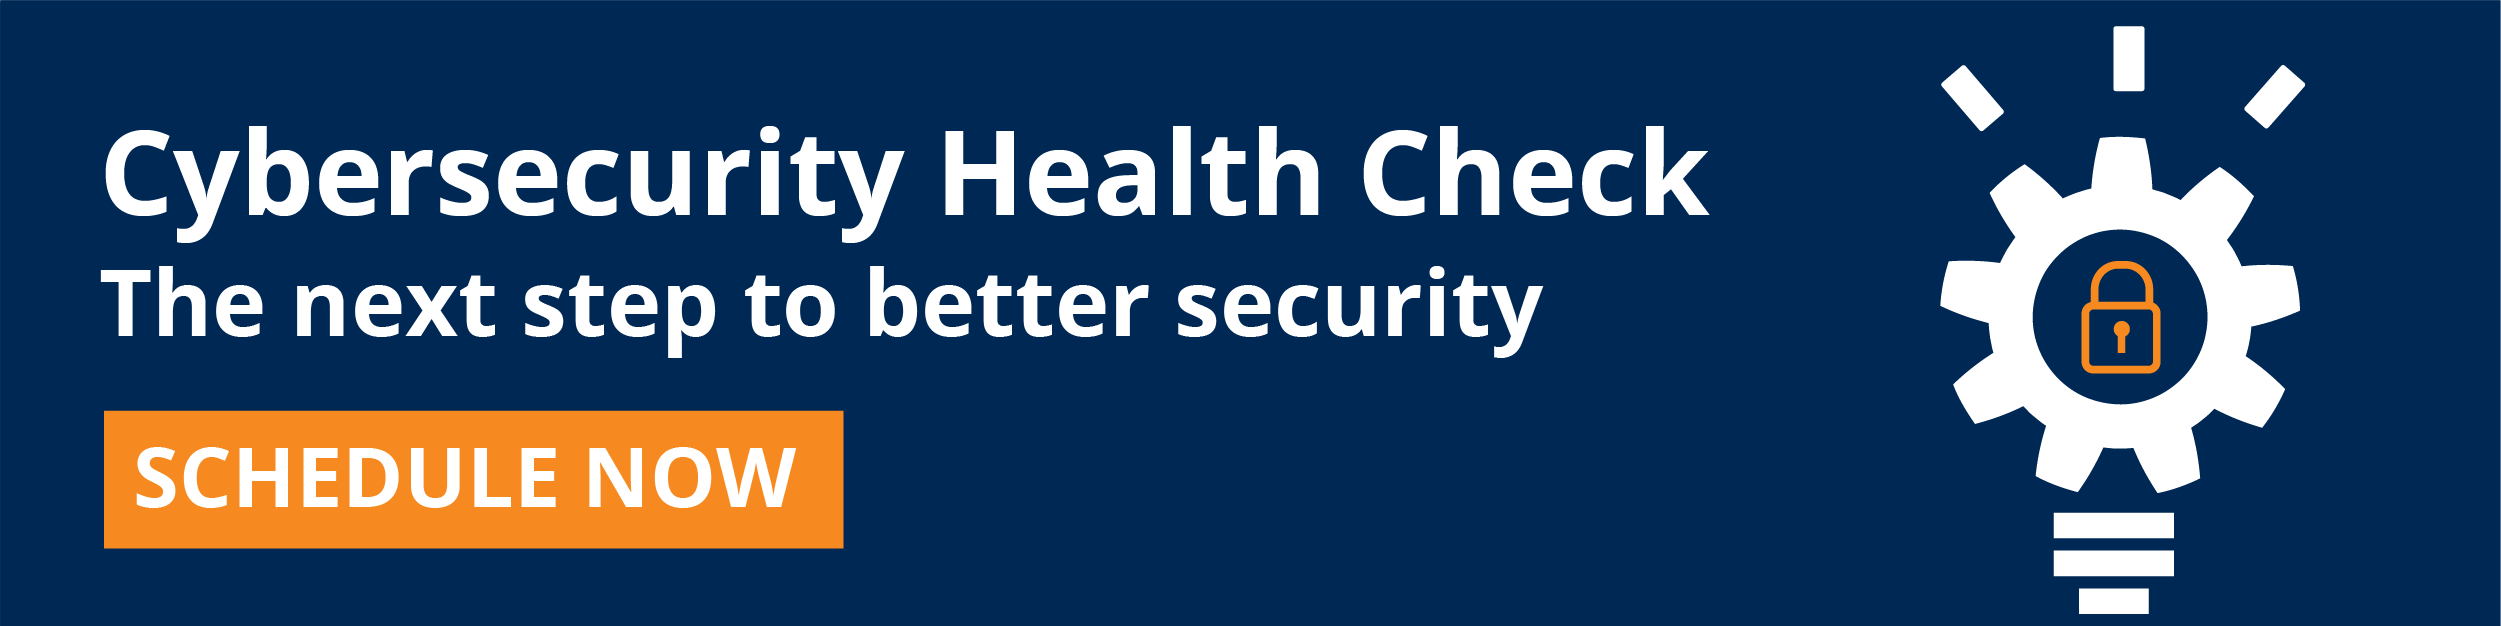 Schedule a free cybersecurity health check